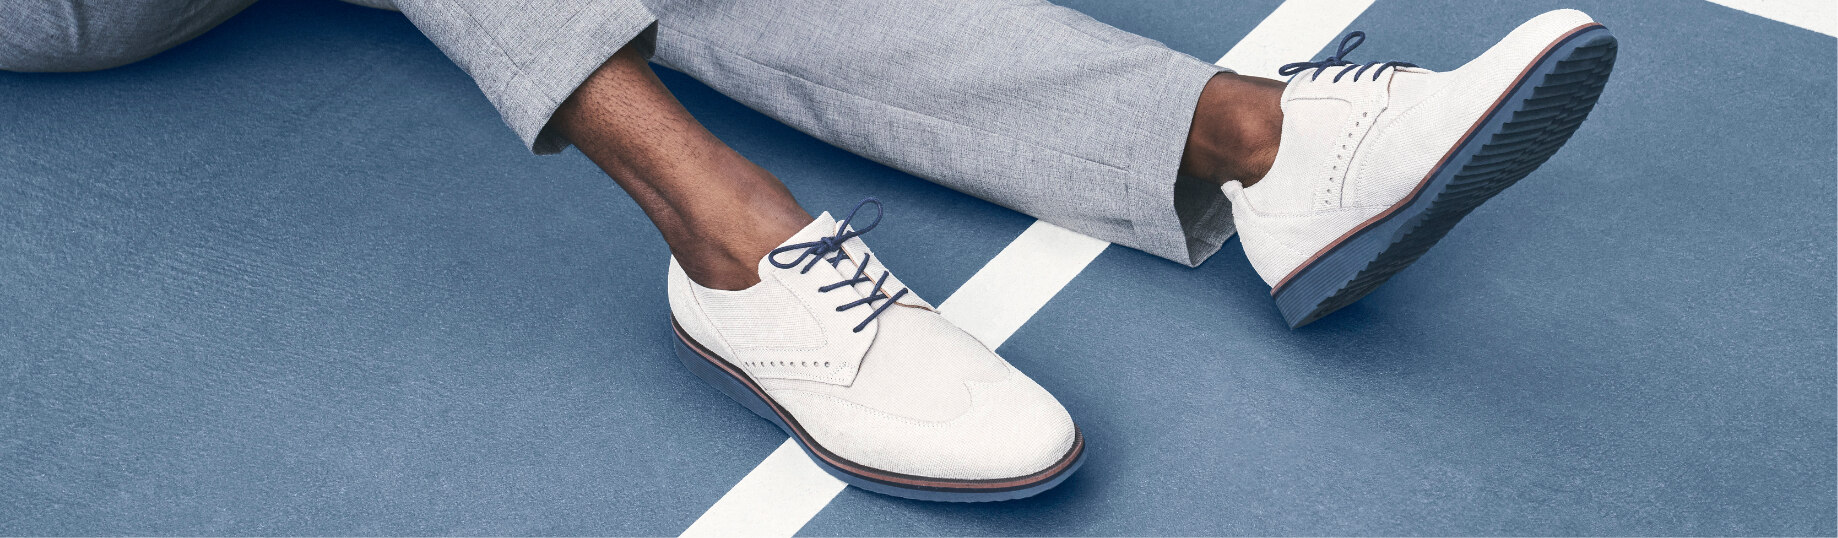 Click to shop this featured Stacy Adams category. The image features the Luxley Wingtip Oxford in Chalk.